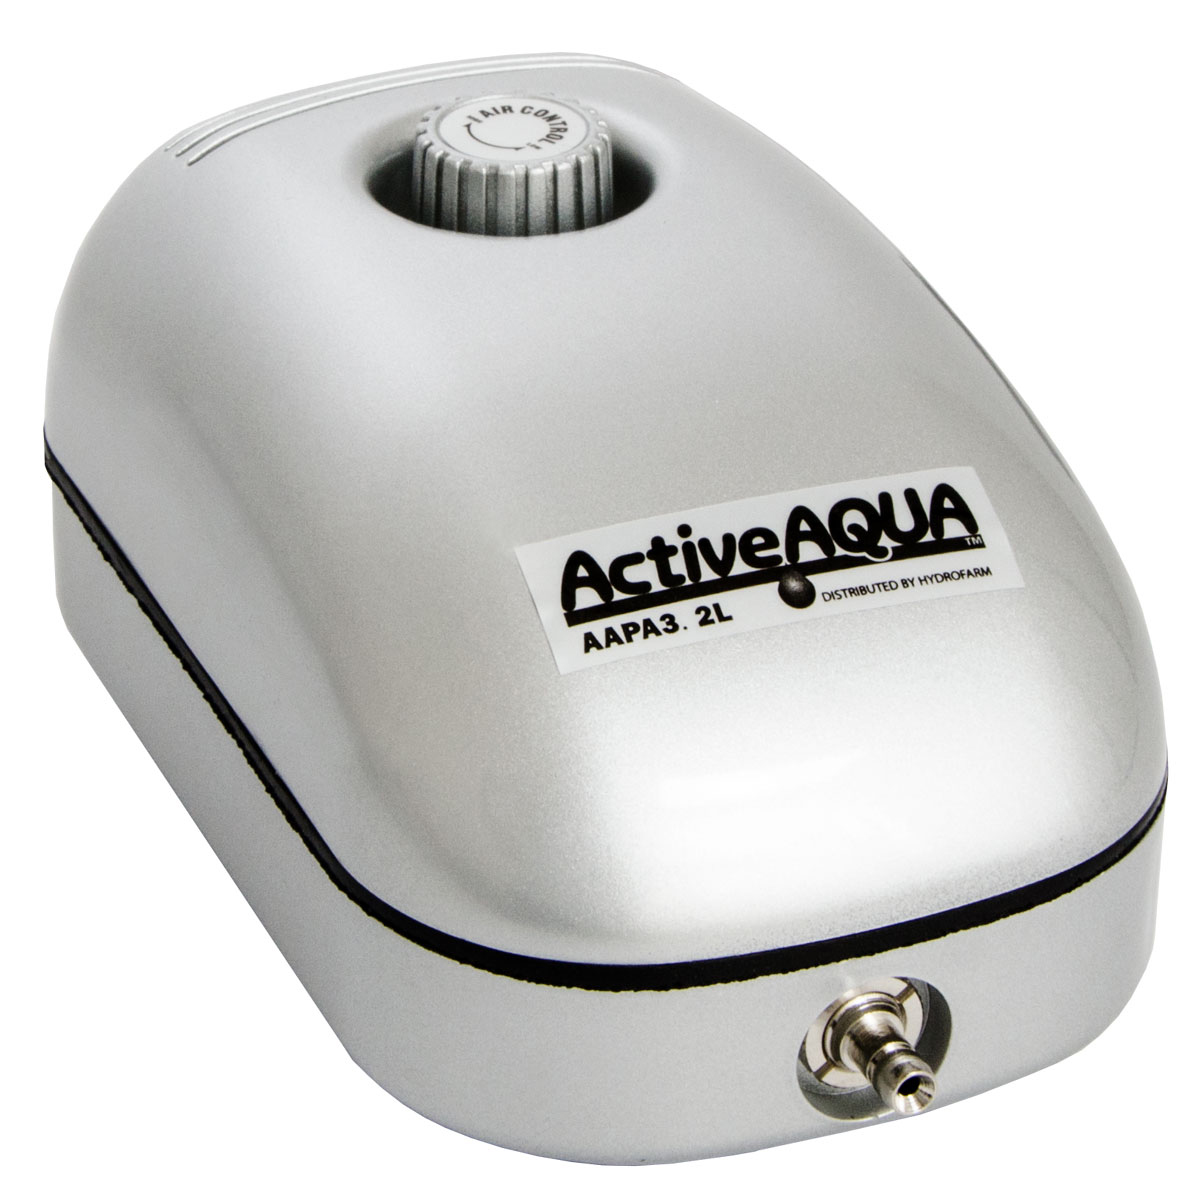 ACTIVEAQUA AIR PUMP #AAPA3.2L